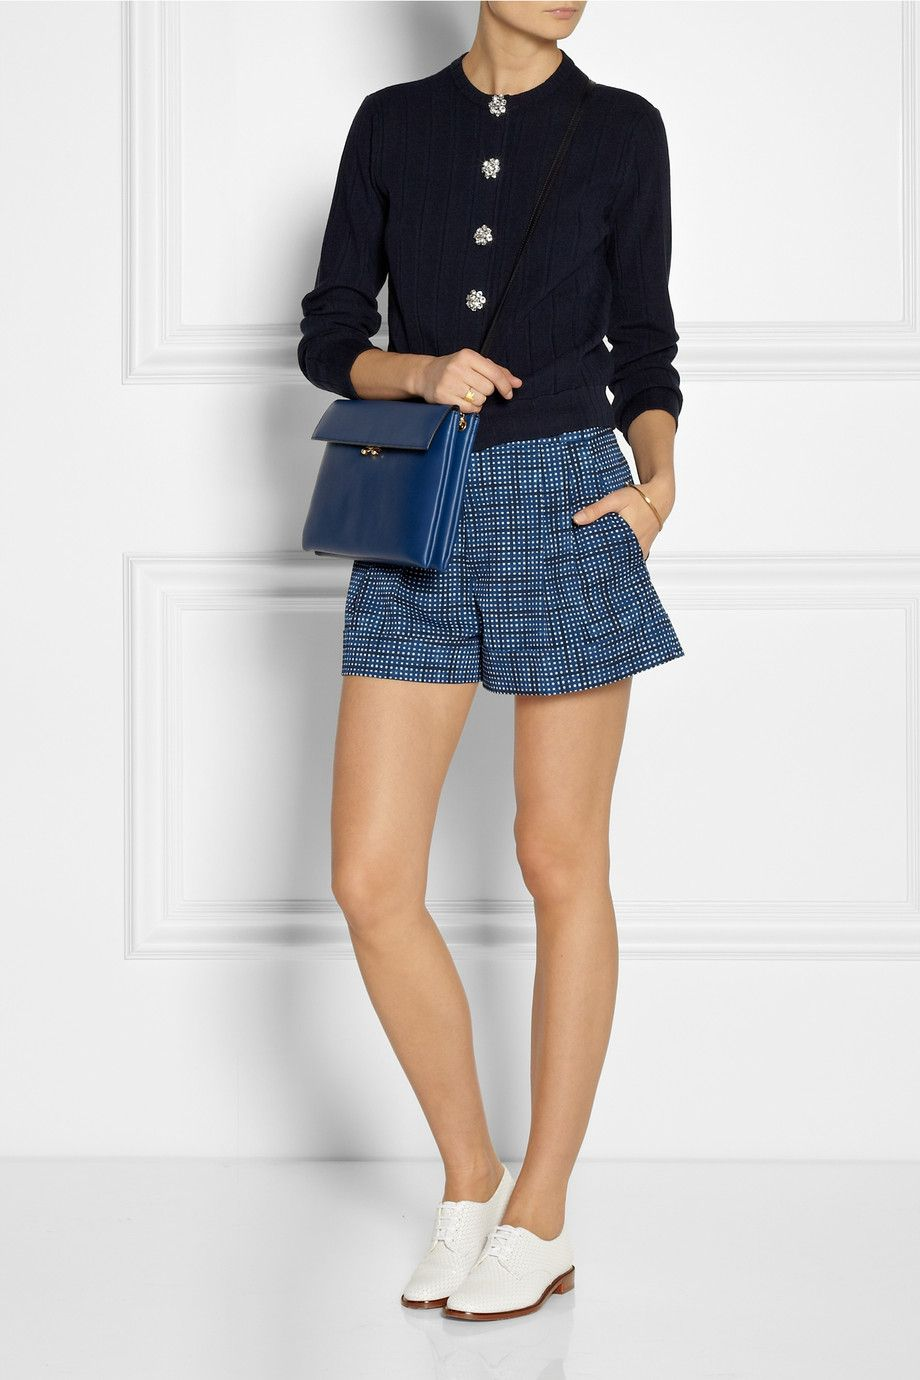 Marc Jacobs|Printed wool-twill shorts|Marc Jacobs | Wool, silk and cashmere-blend cardigan | Robert Clergerie | Embossed leather brogues | Marni | Two-compartment leather clutch